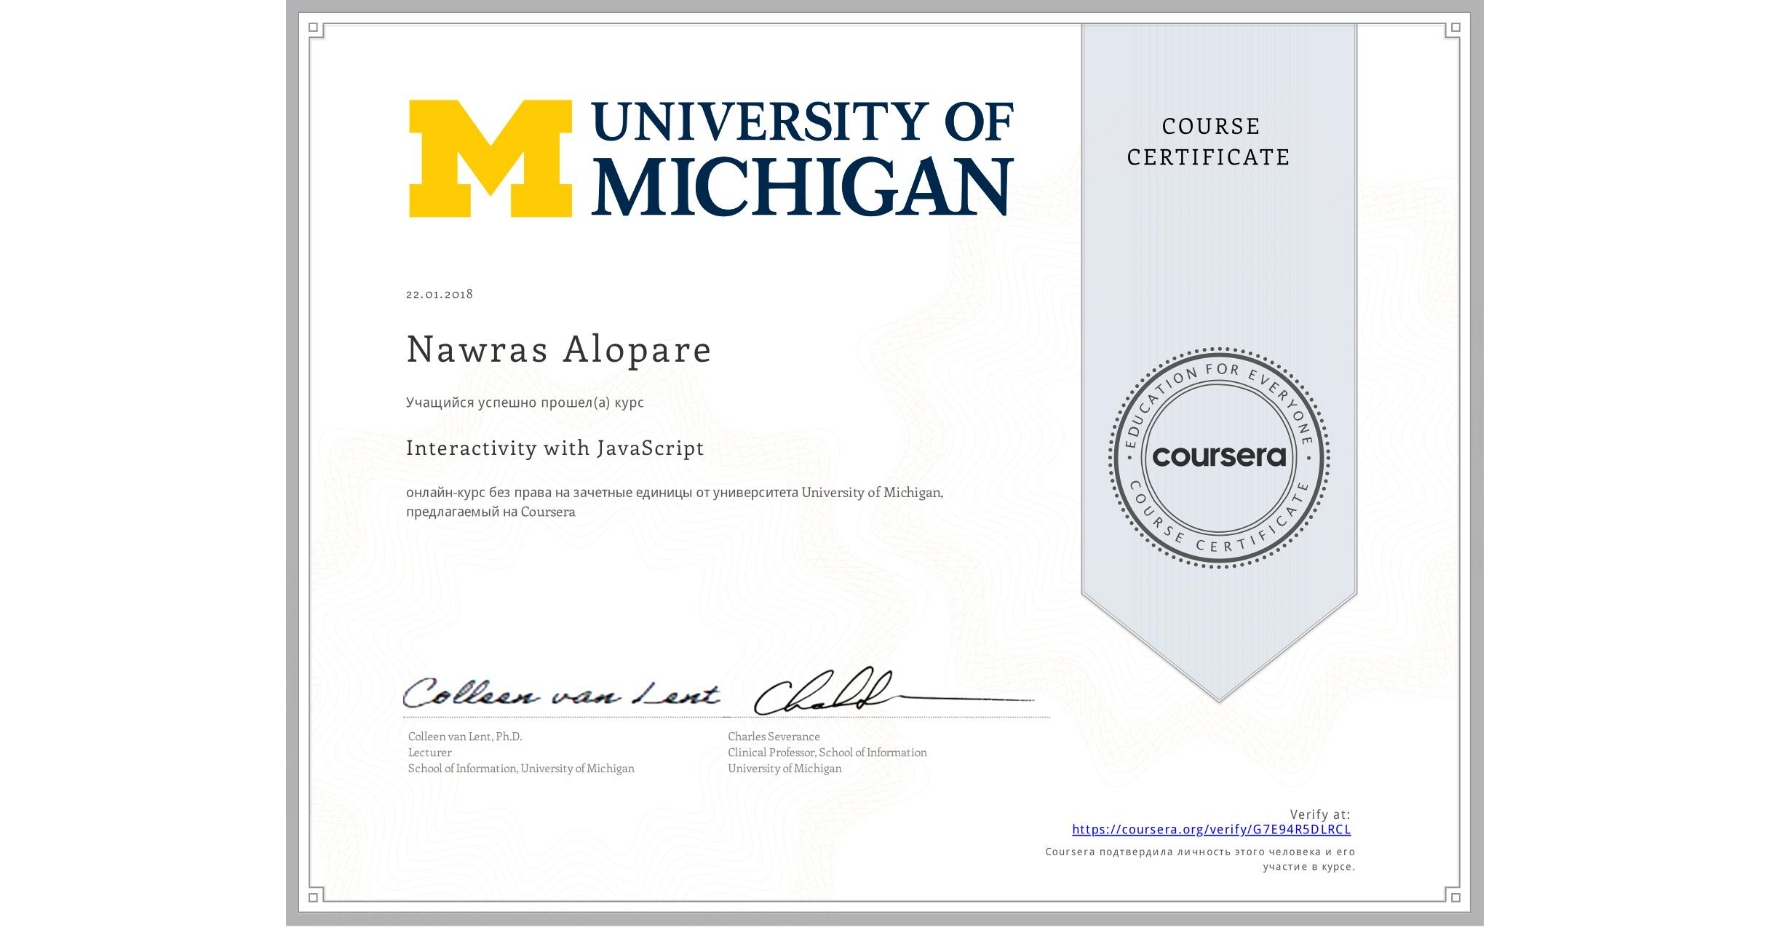 View certificate for Nawras Alopare, Interactivity with JavaScript, an online non-credit course authorized by University of Michigan and offered through Coursera